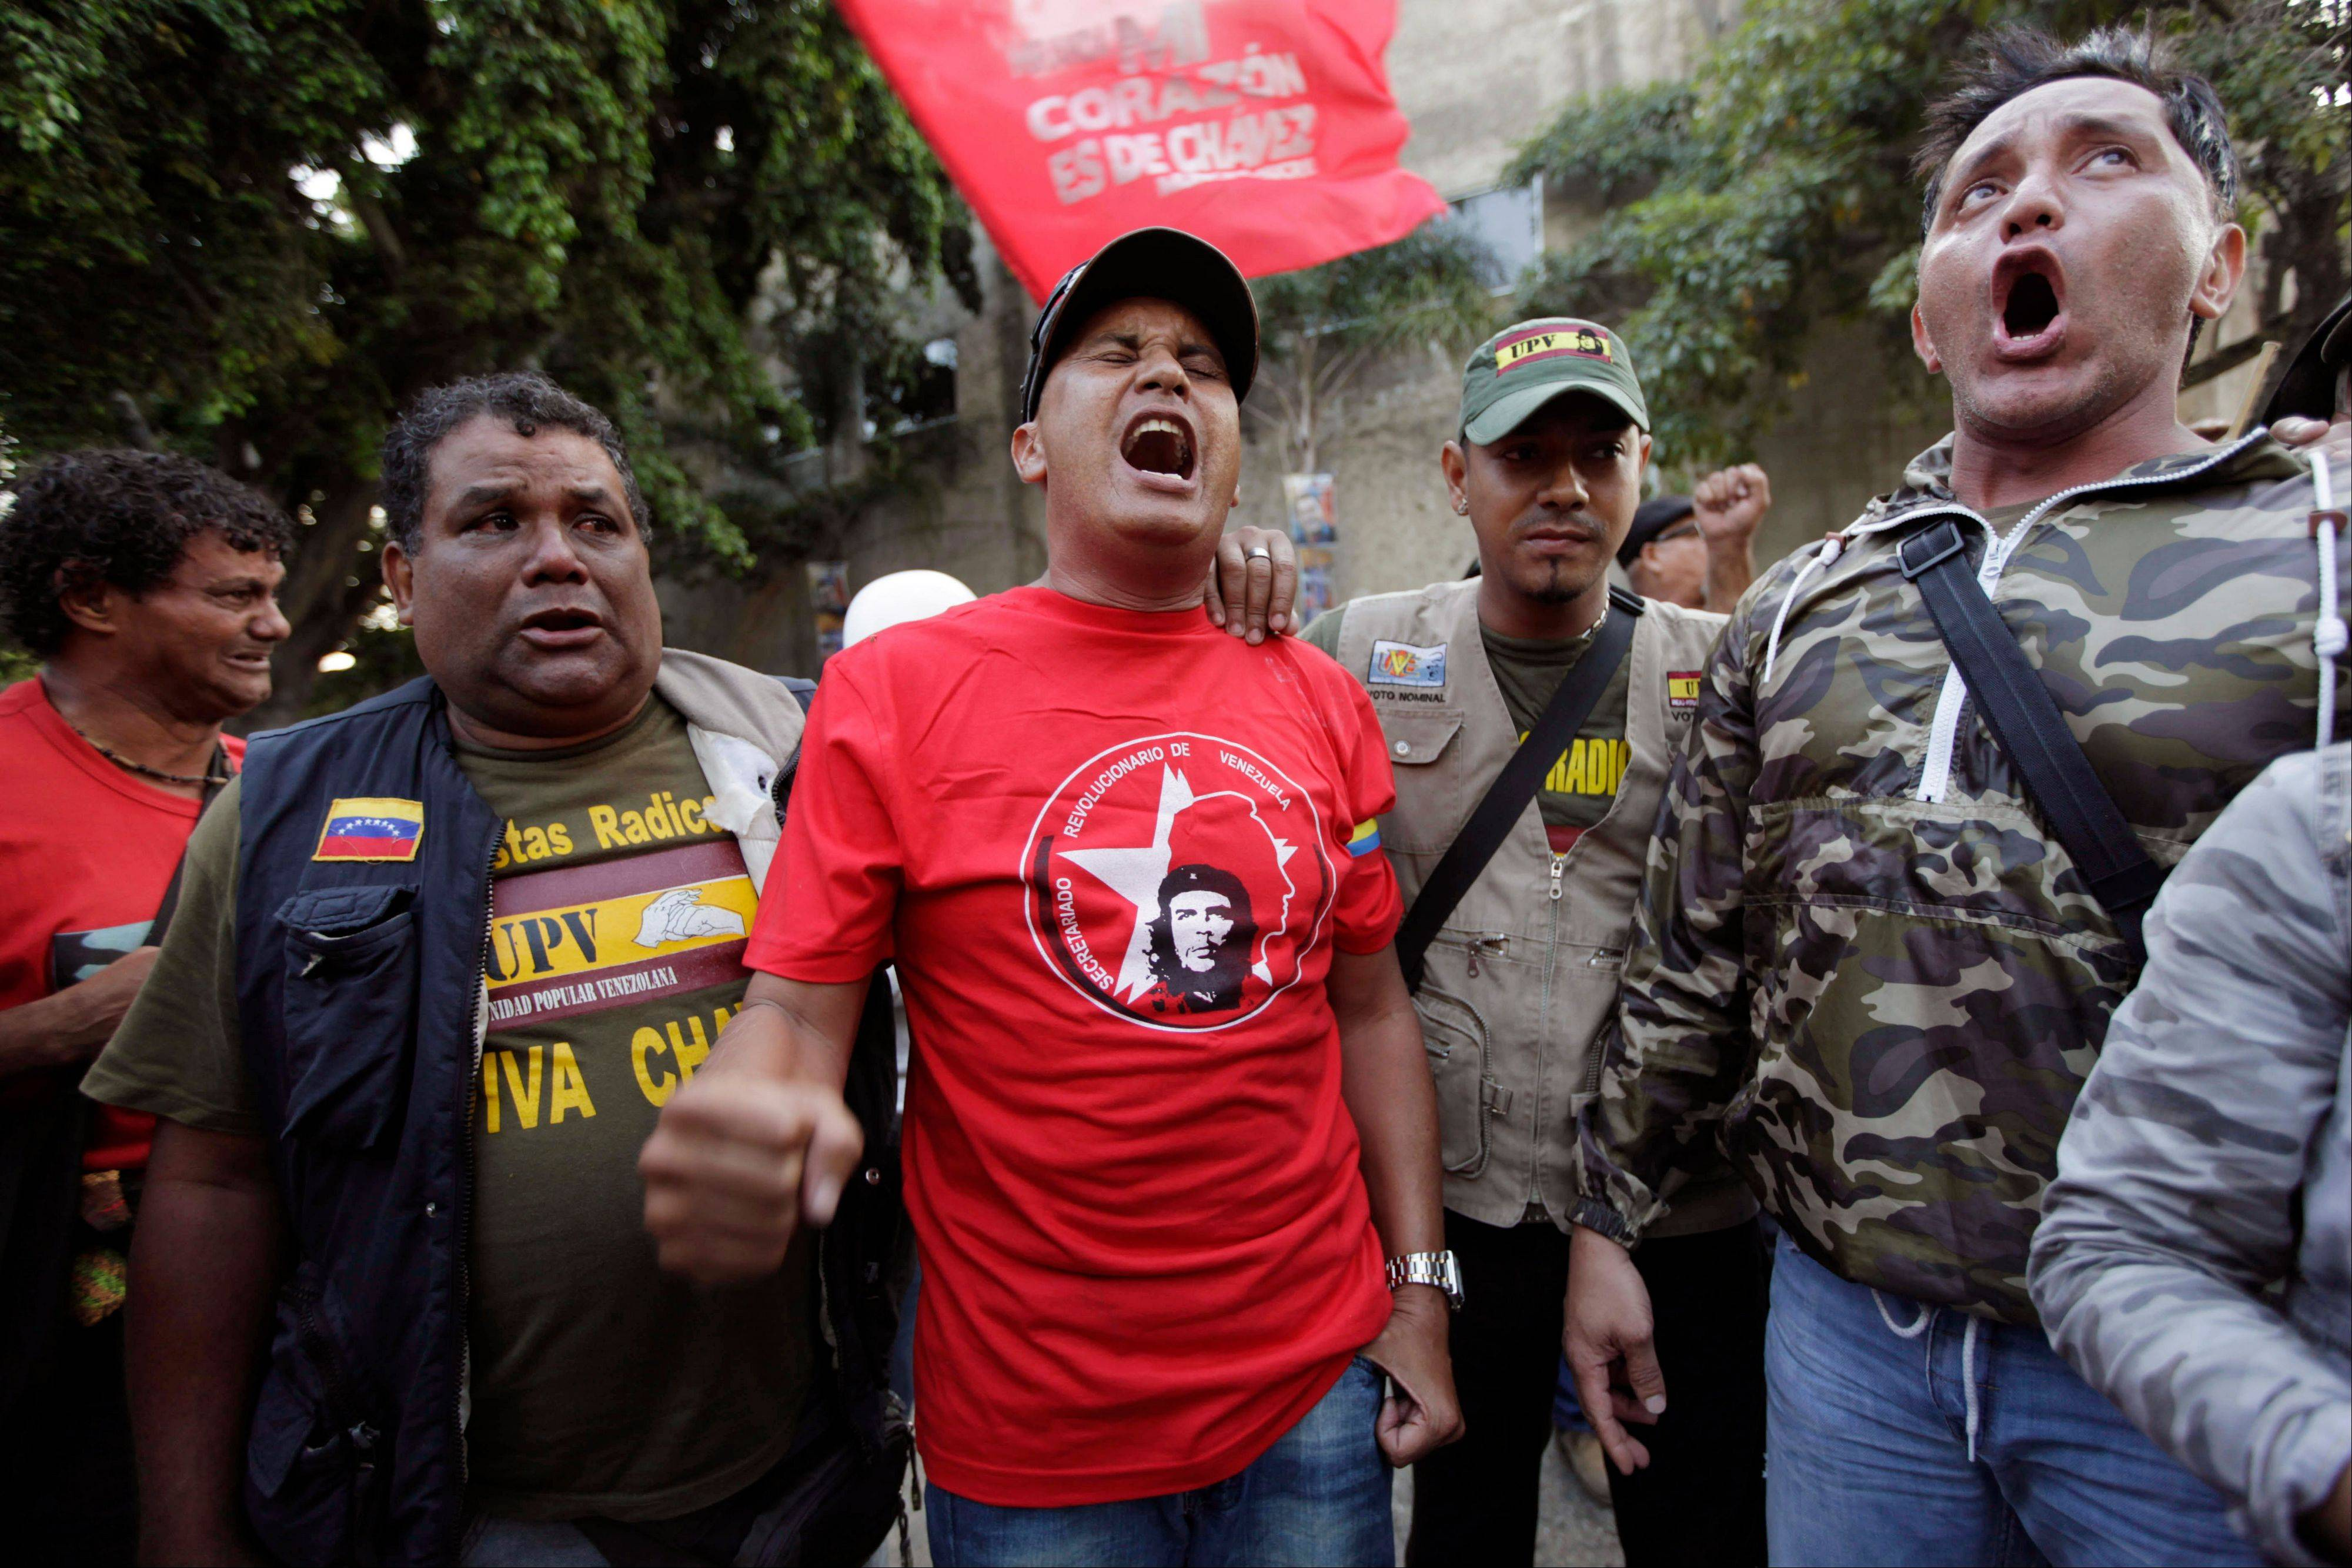 Supporters of Venezuela�s President Hugo Chavez yell �Long Live Chavez!� and sing their nation�s anthem after learning that Chavez has died through an announcement by the vice president in Caracas, Venezuela.